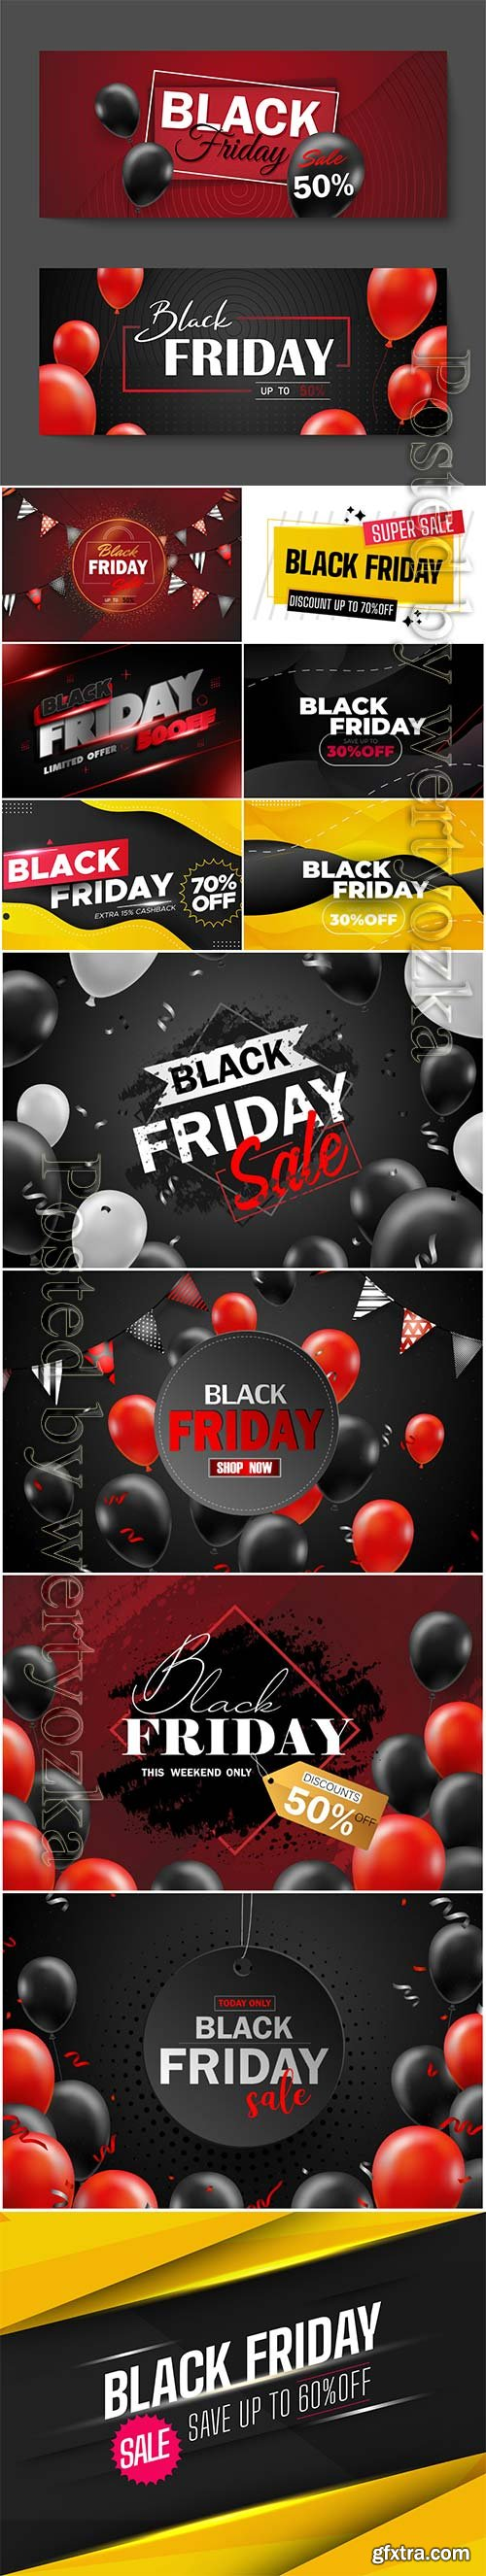 Black friday sale poster with black balloons, friday promotion